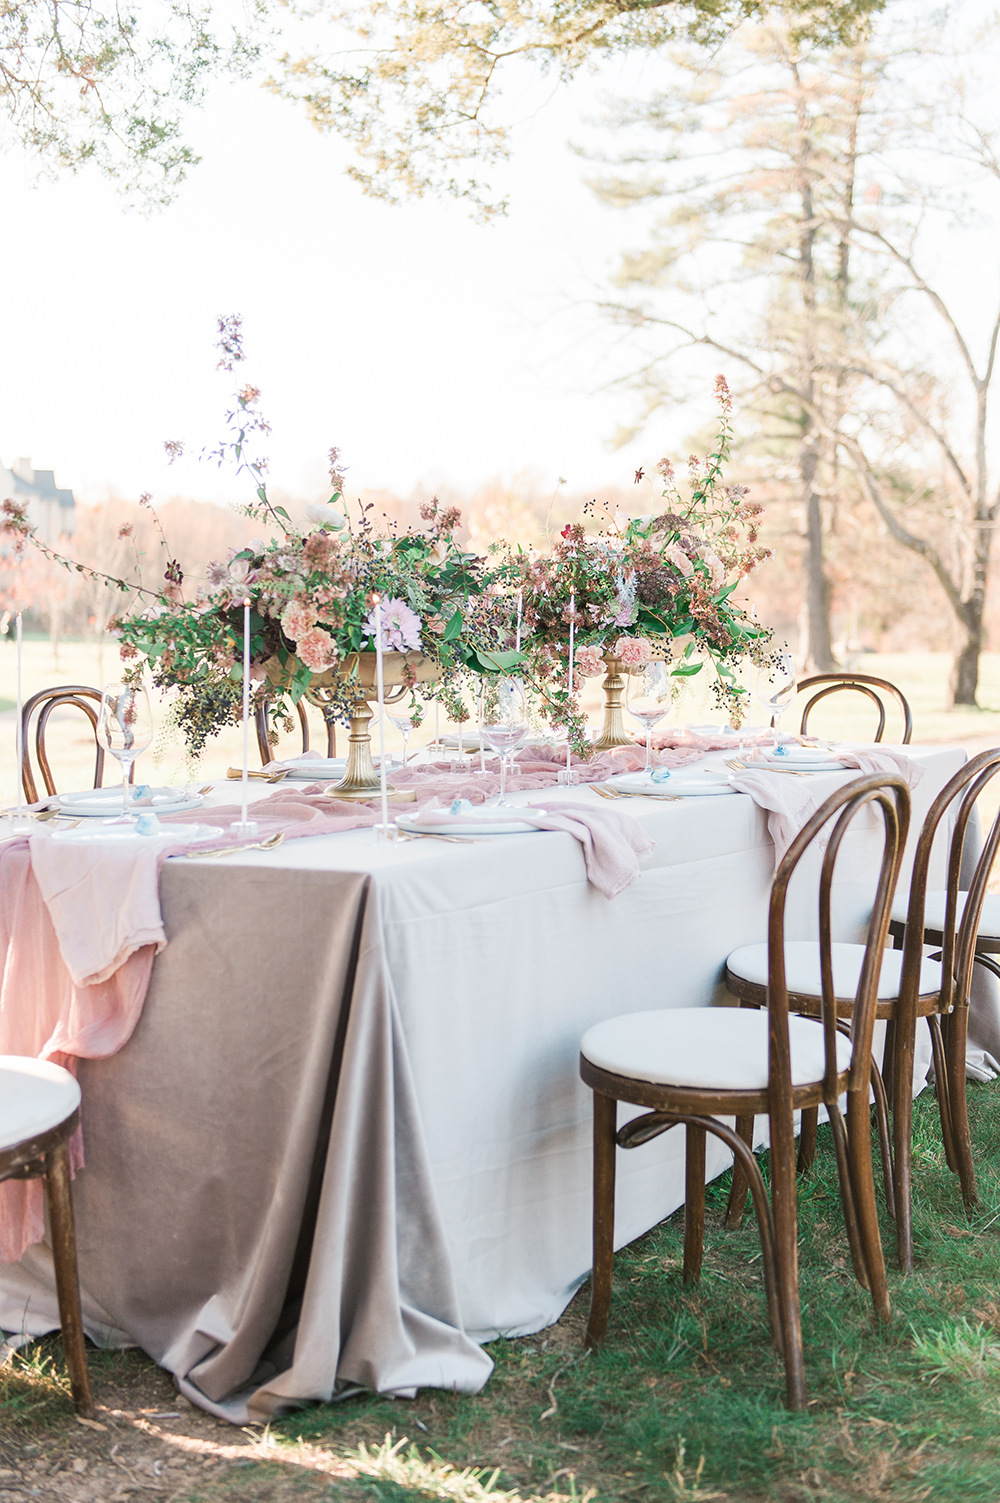 organic weddings - photo by Jenny B Photos http://ruffledblog.com/ethereal-wedding-inspiration-with-vintage-accents